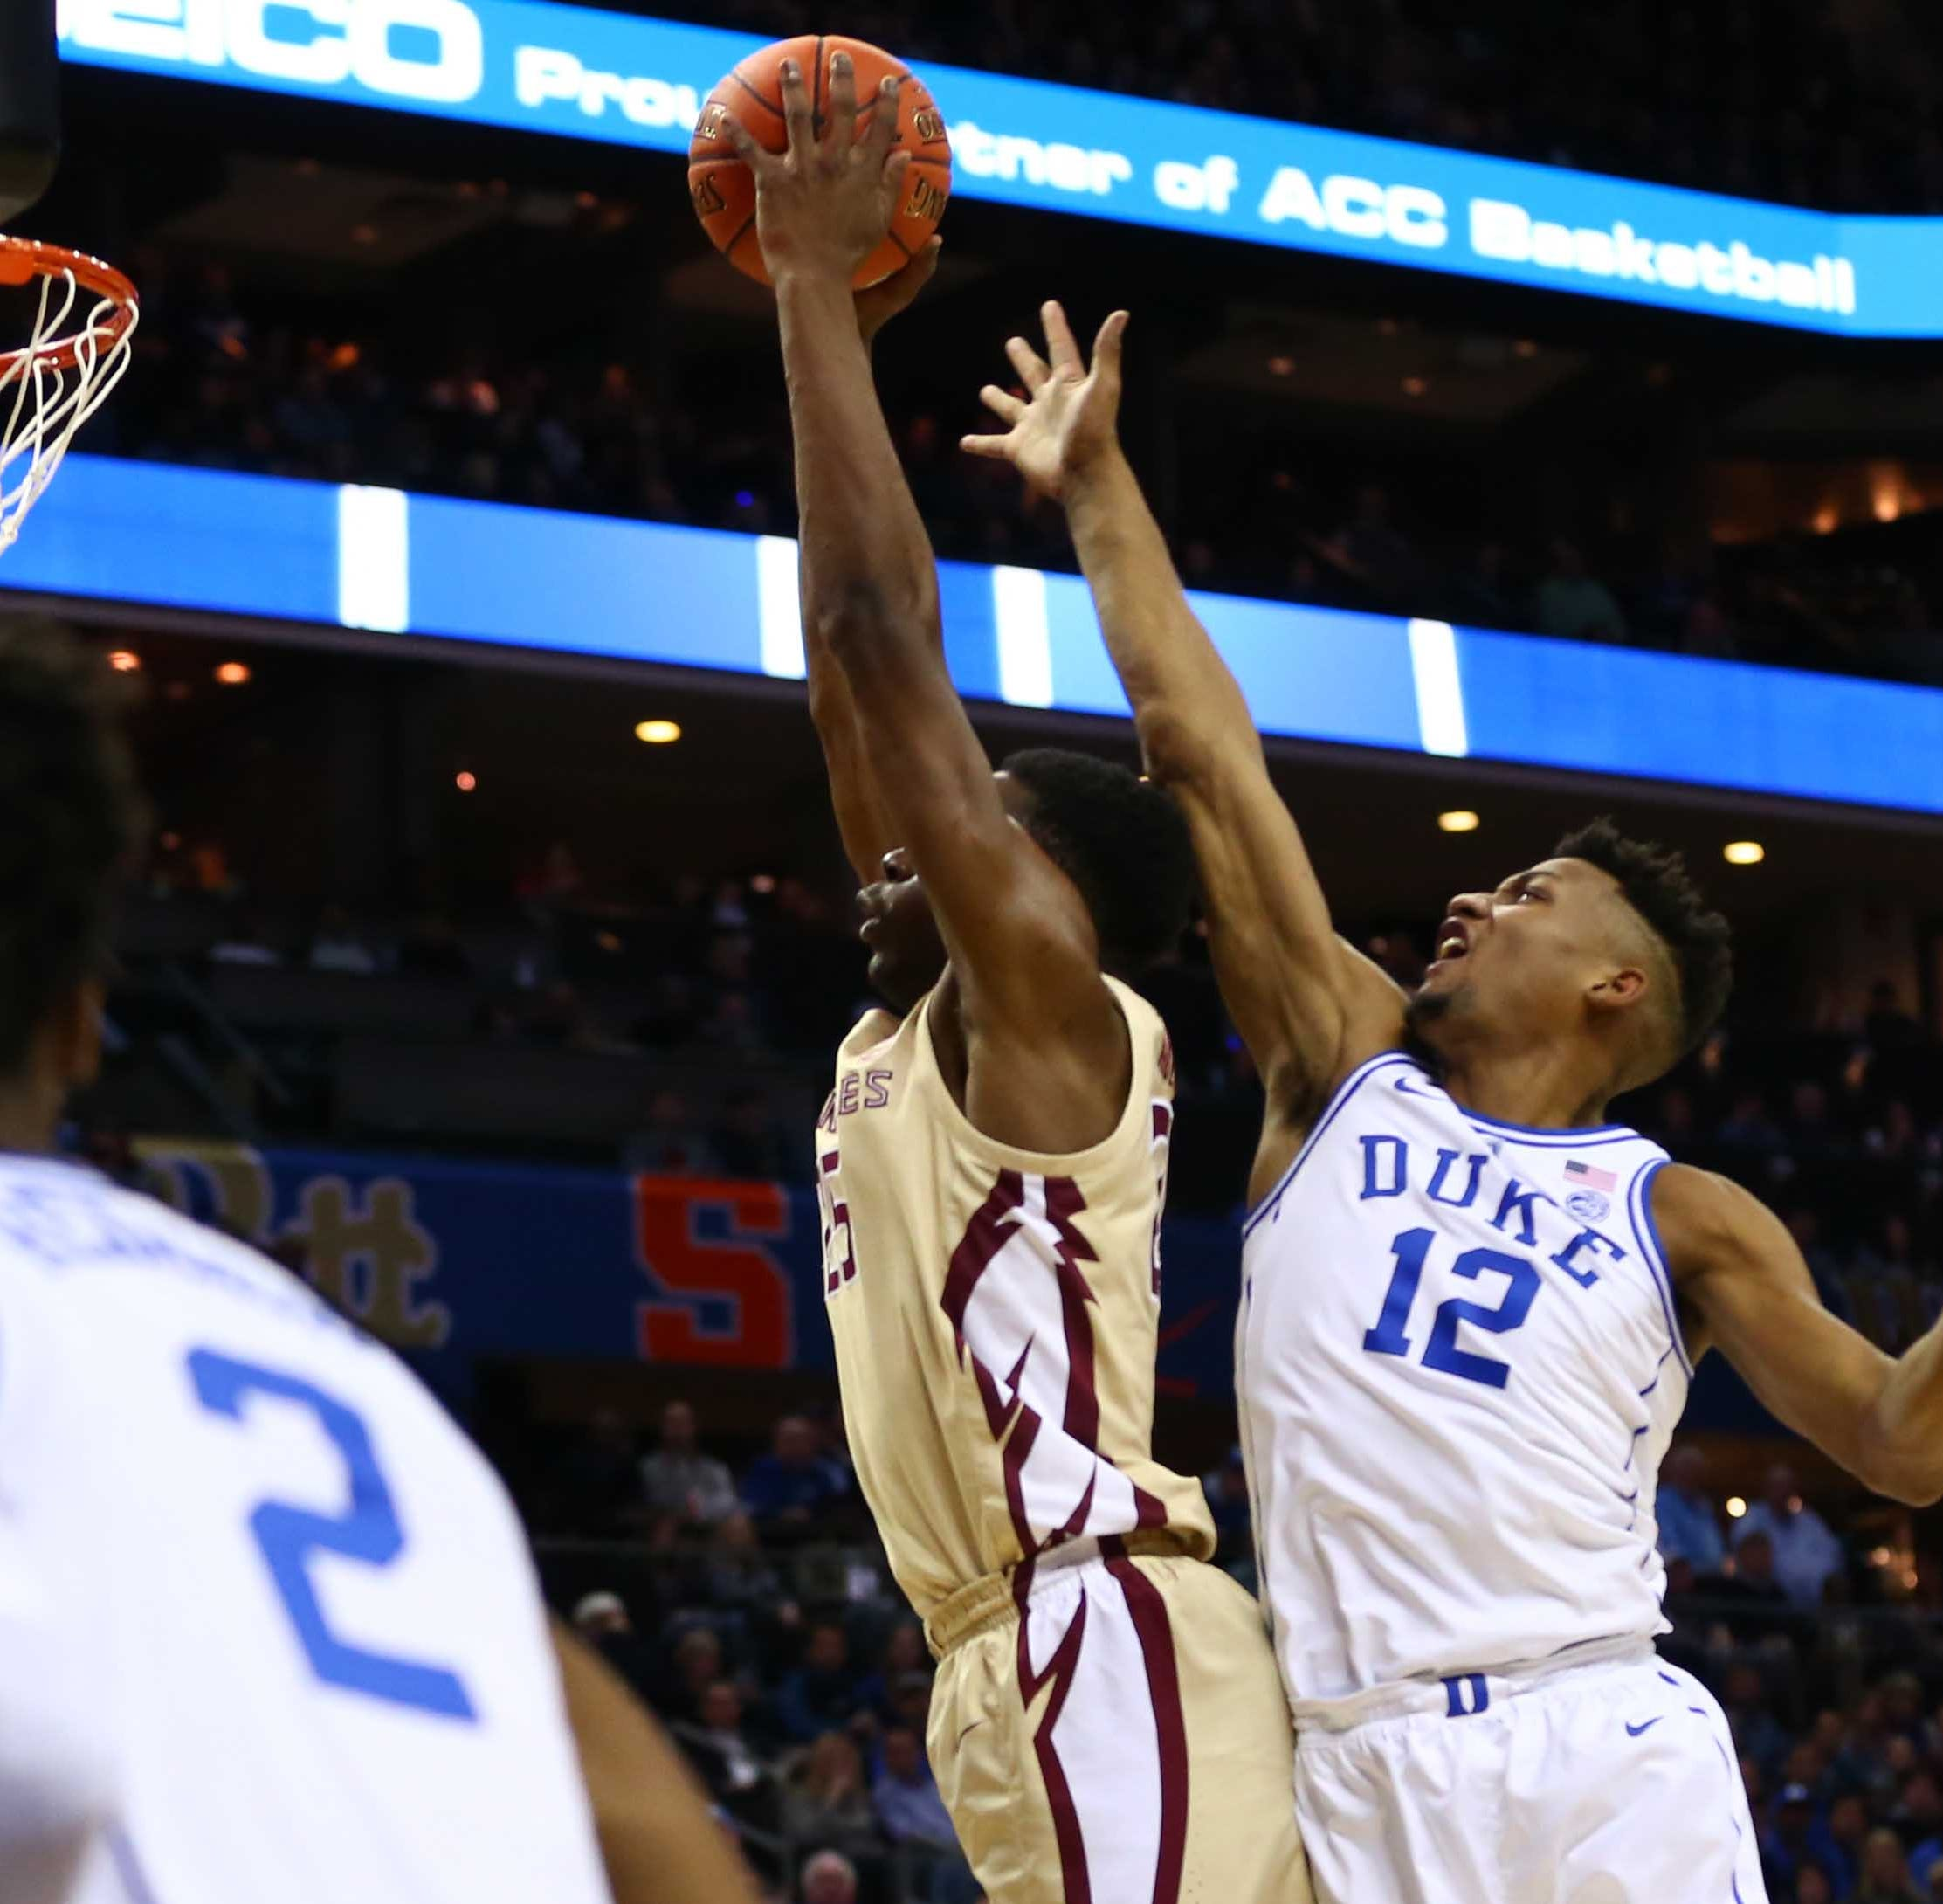 Five reasons why Florida State got a favorable draw in the NCAA tournament | McGahee III